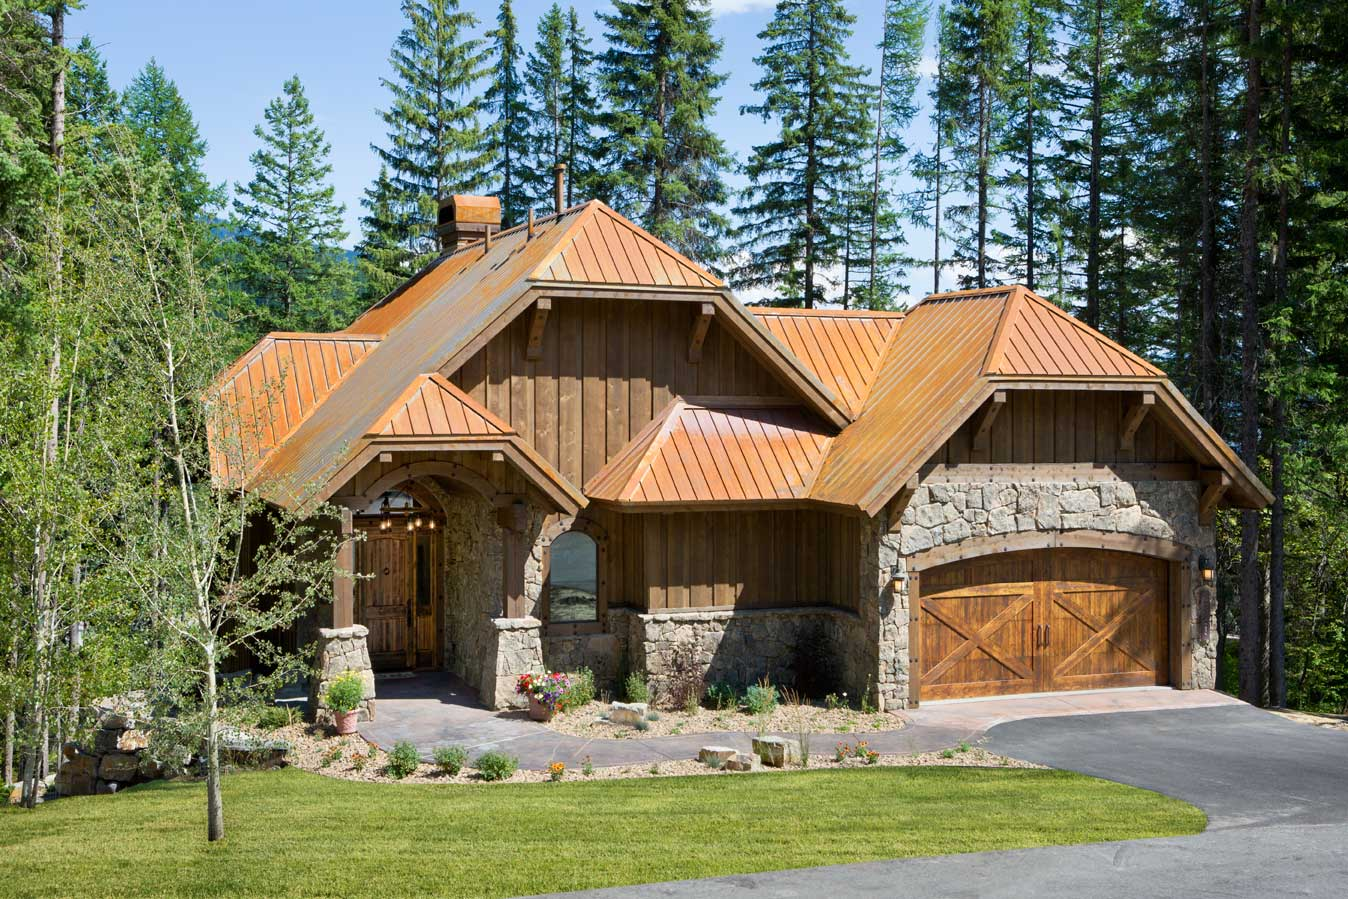 Whitefish builders montana custom rustic elegance for Montana home builders